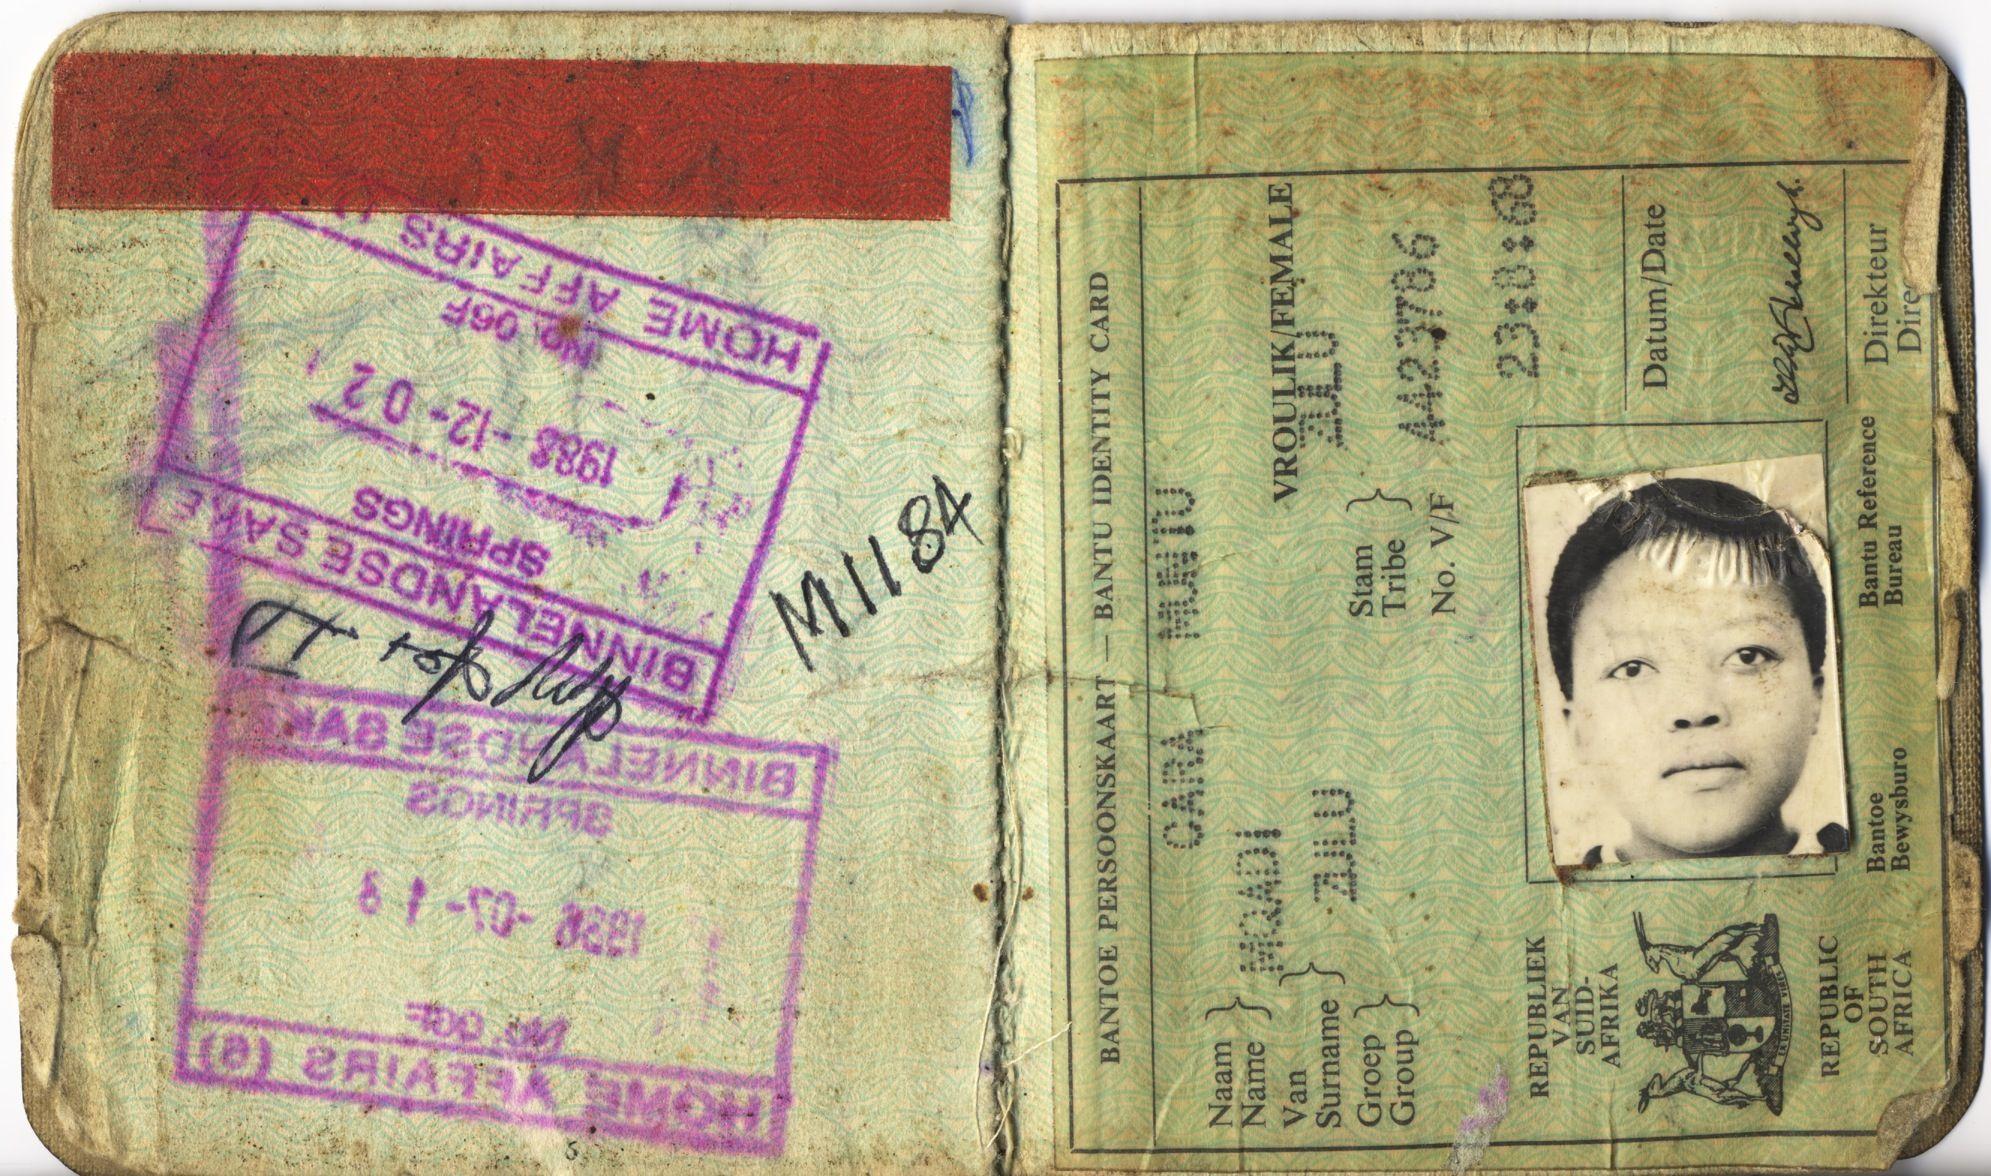 south african apartheid pass book Google Search South